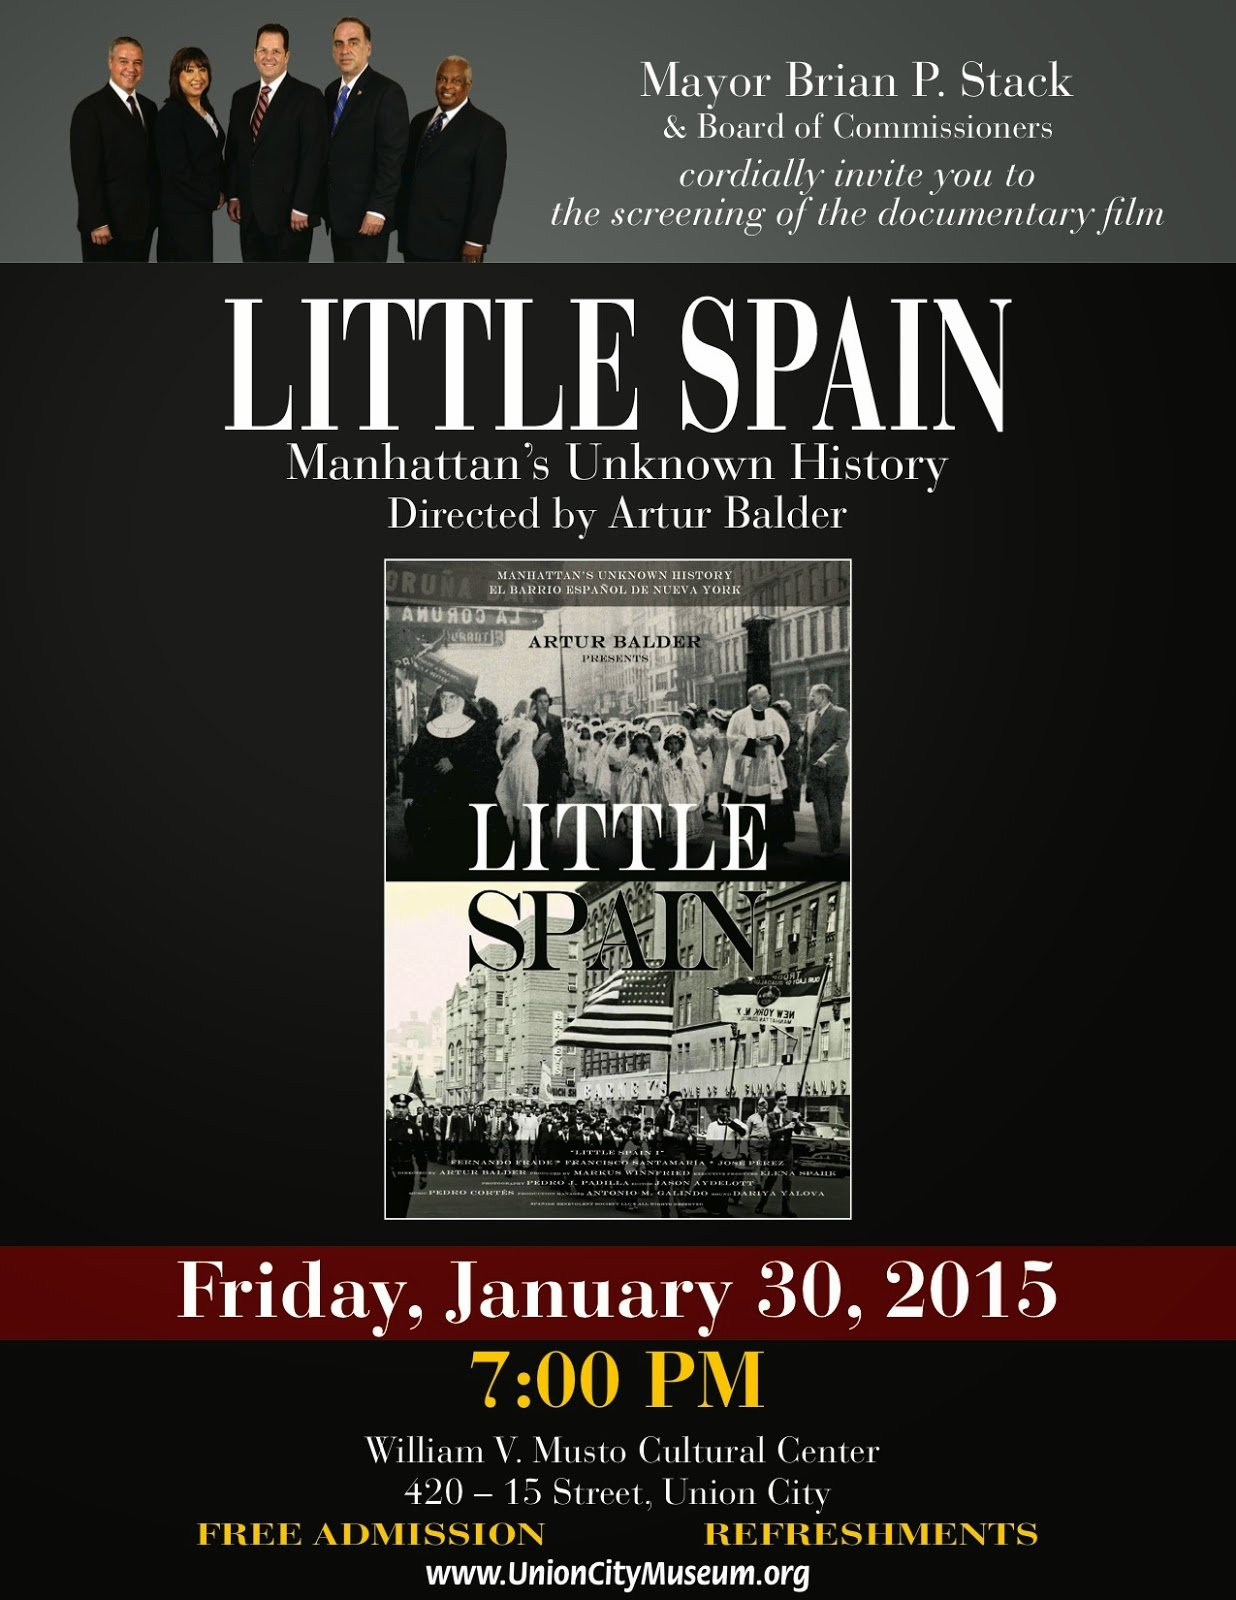 Little Spain flyer